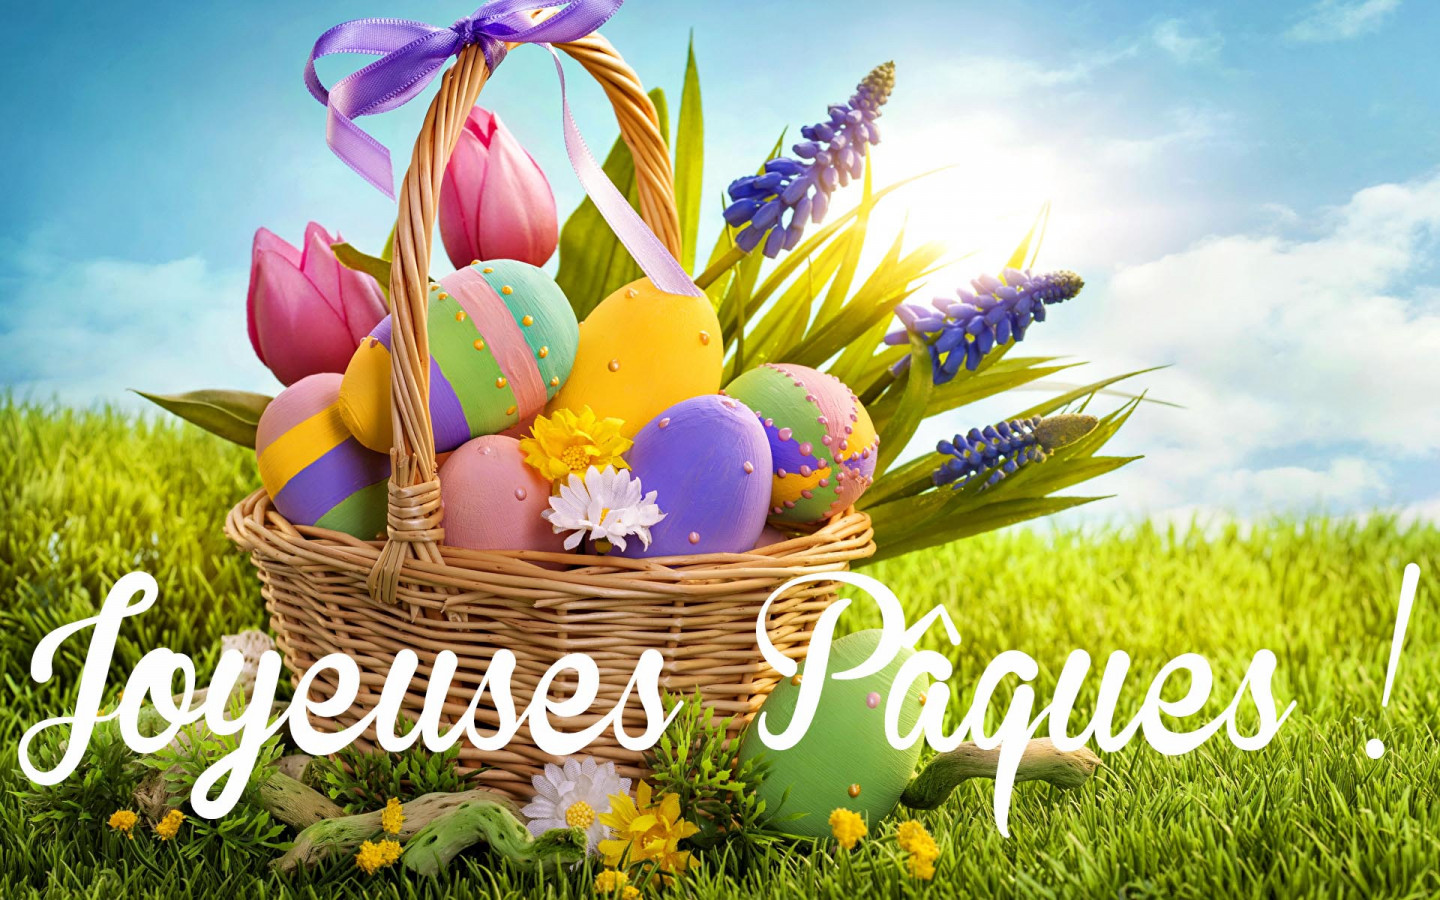 Holidays_Easter_Lupinus_Tulips_Eggs_Wicker_basket_518538_1920x1200